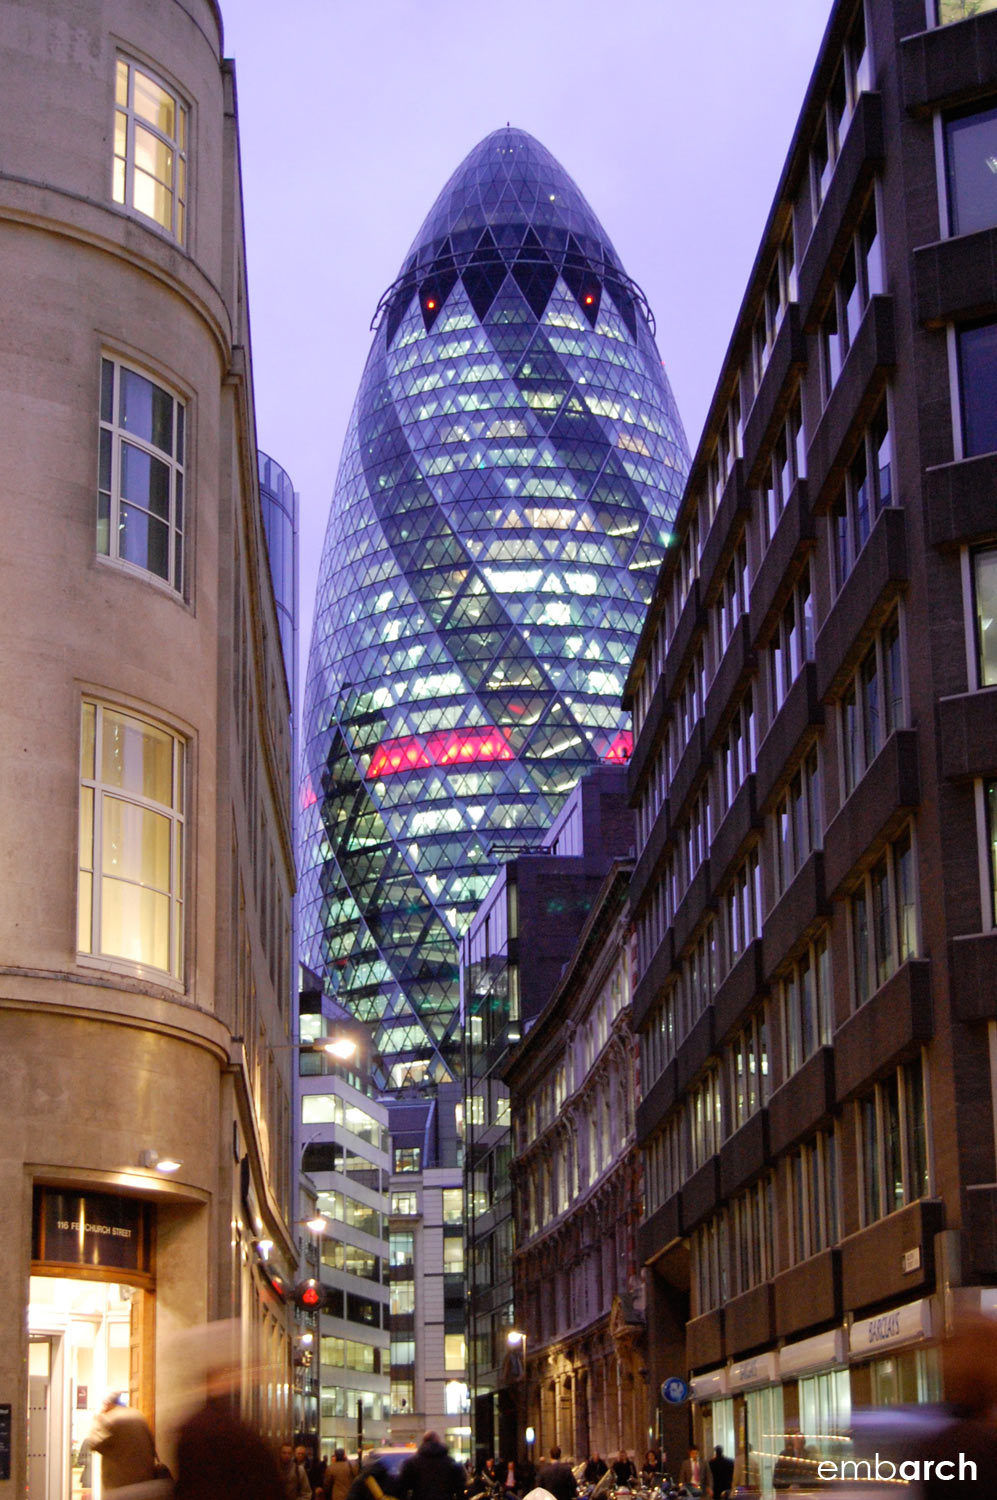 30 St. Mary's Axe - exterior view at night